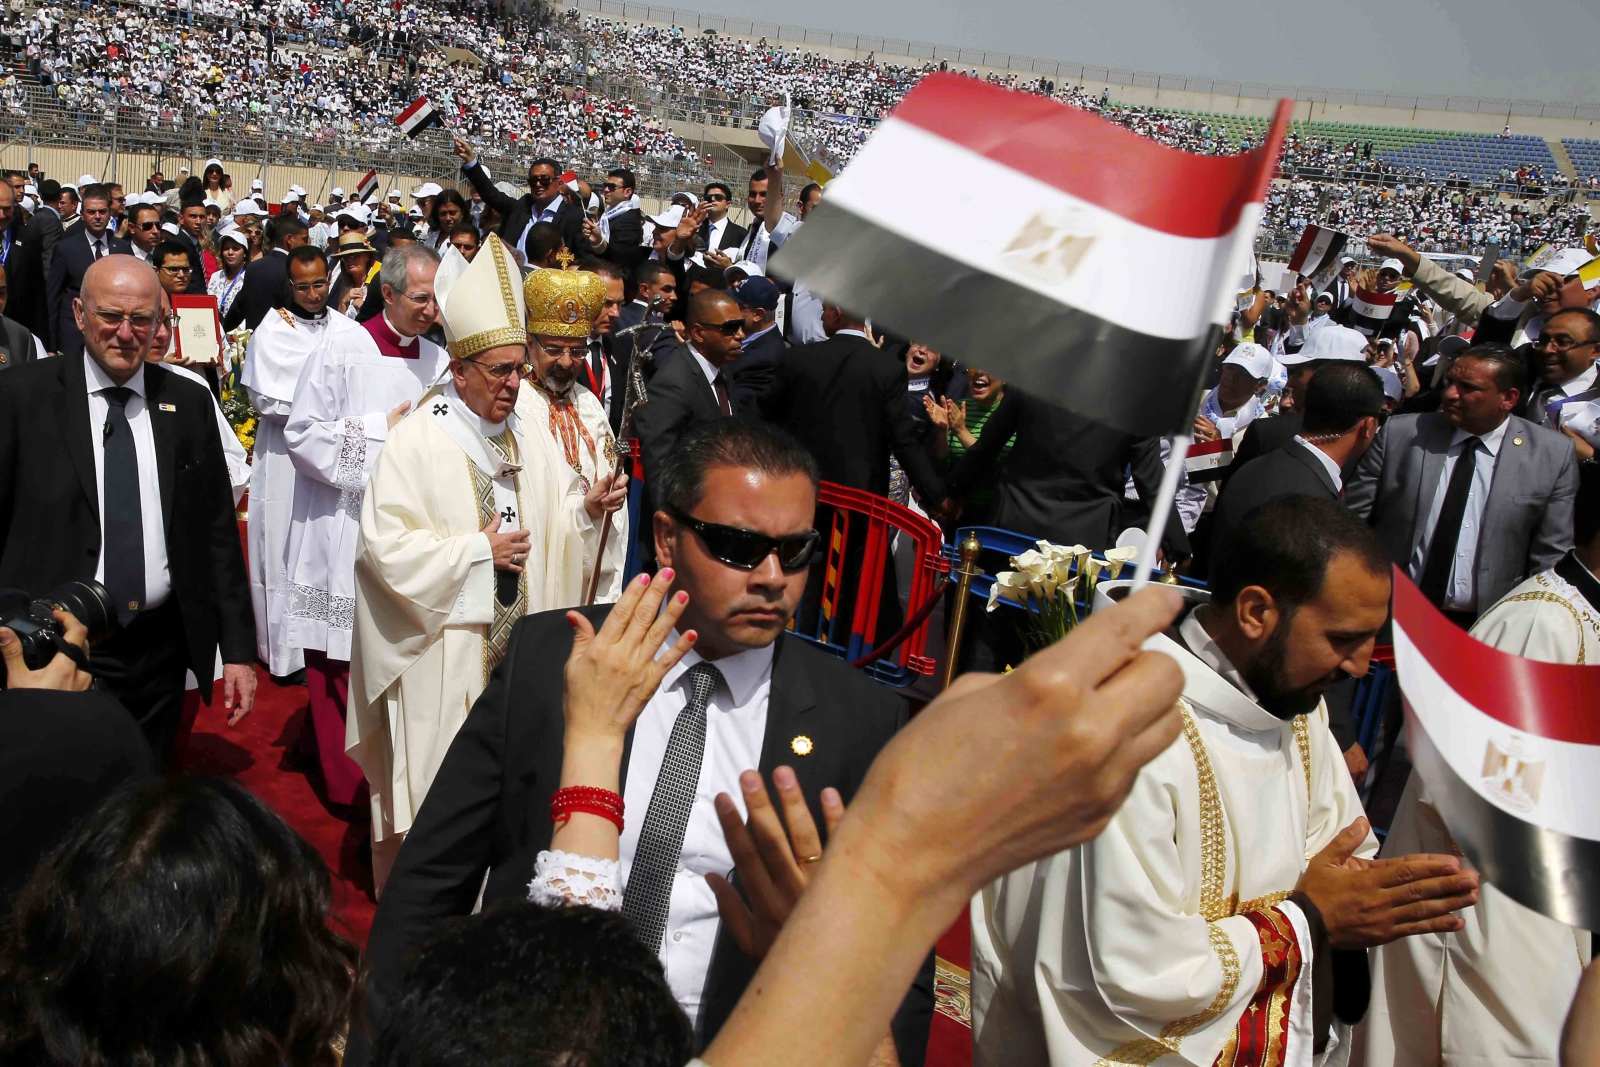 Papież Franciszek w Egipcie. fot. EPA/HOSSAM DIAB / EGYPTIAN CATHOLIC MEDIA CENTER / POOL